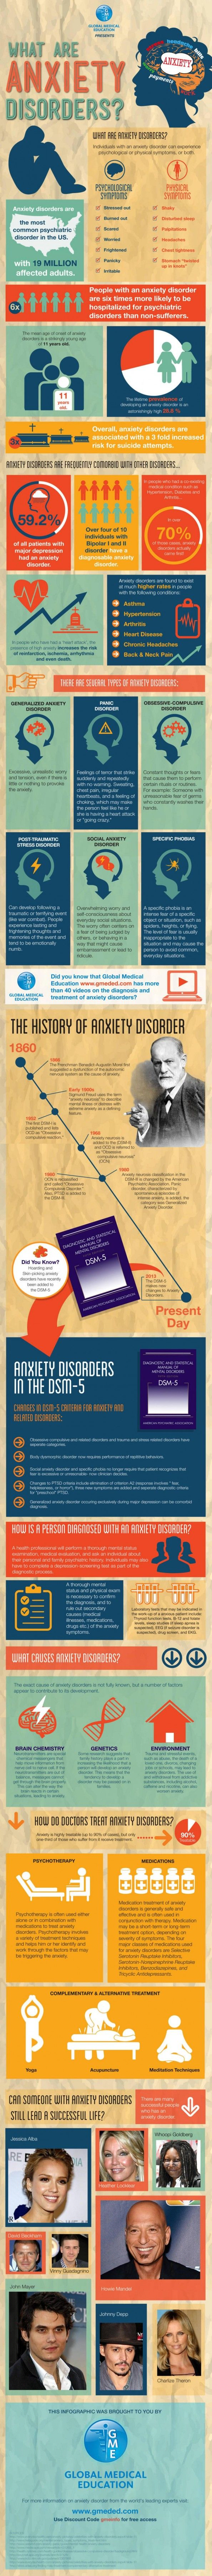 What Are Anxiety Disorders? Infographic -